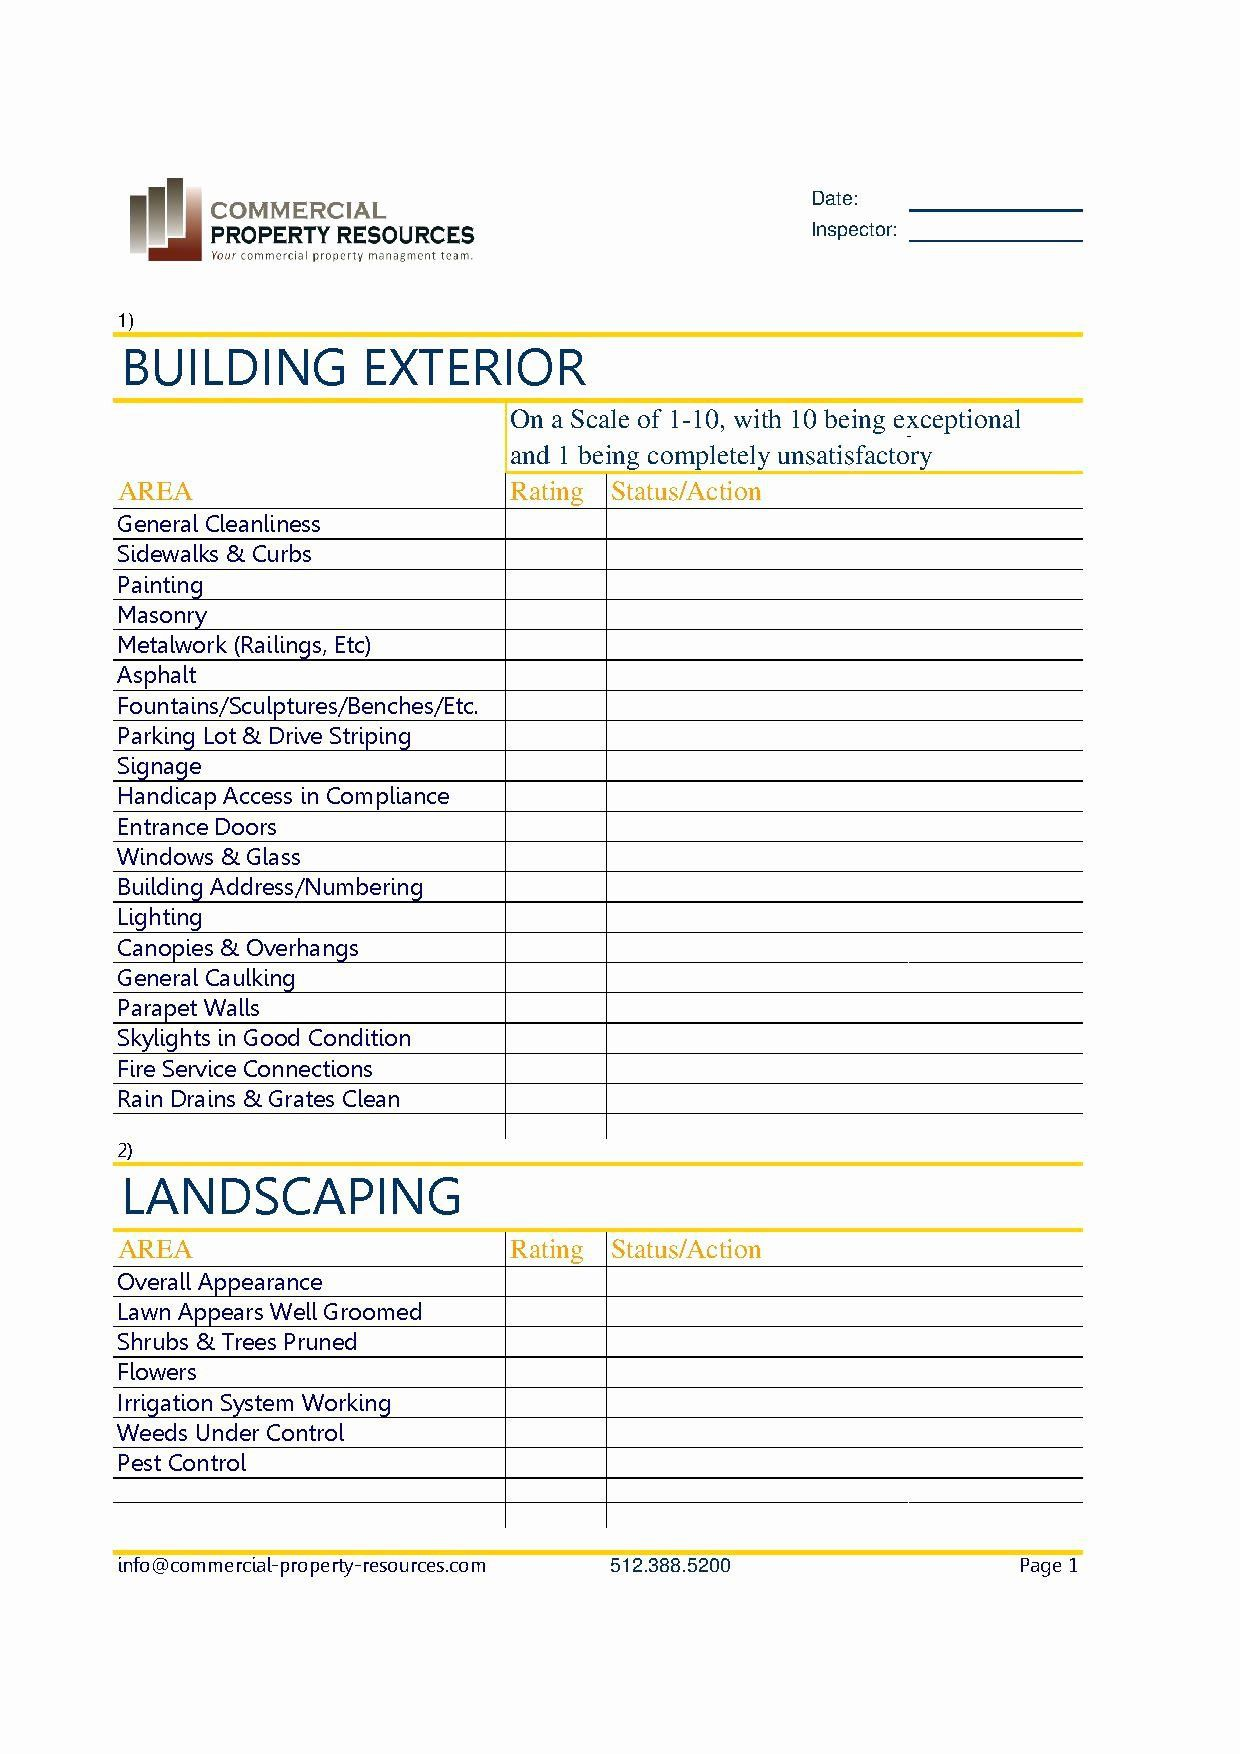 002 Magnificent Property Management Maintenance Checklist Template Image  FreeFull